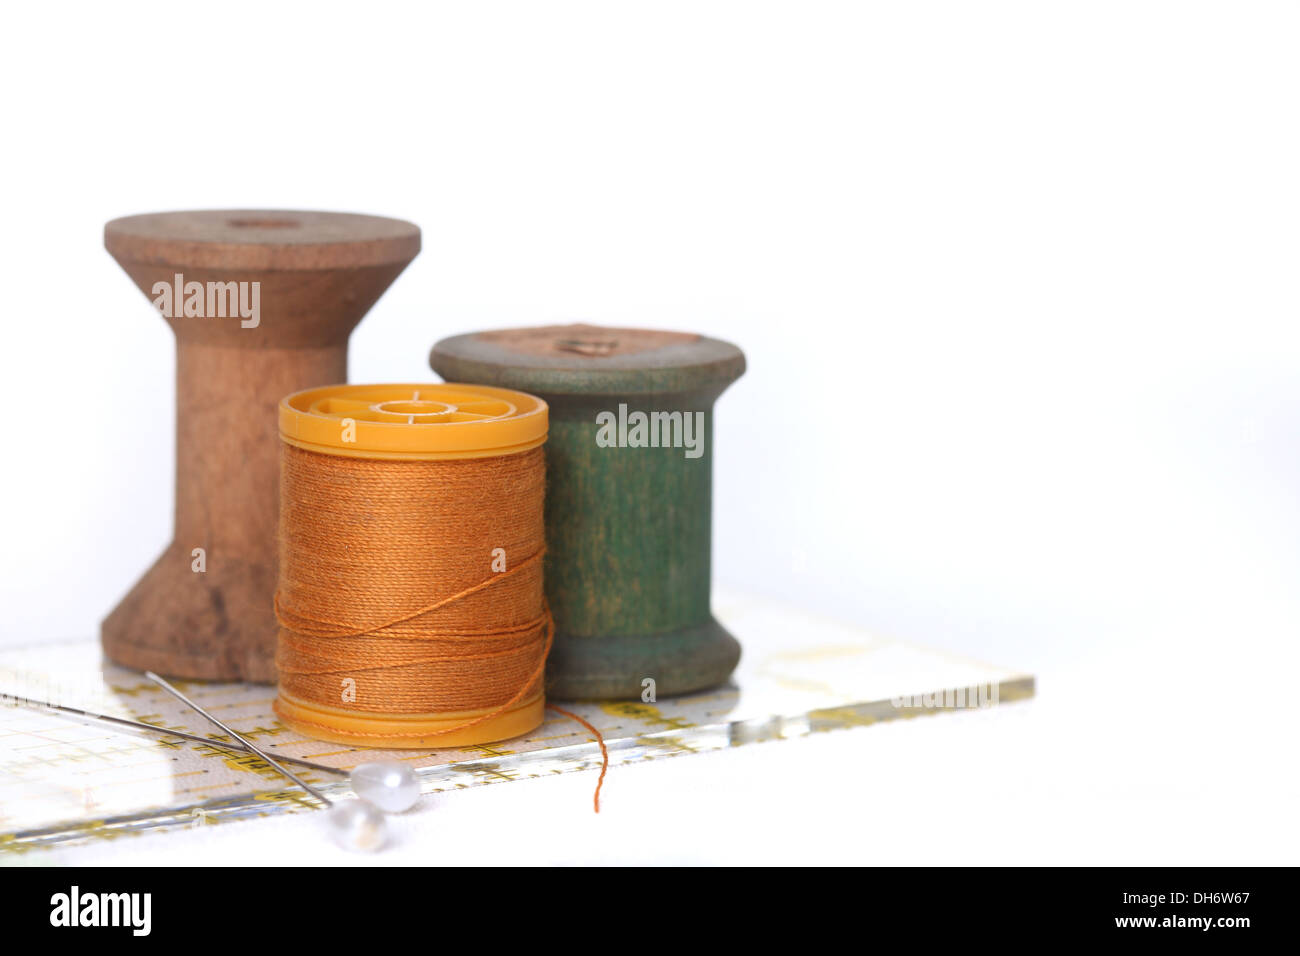 Sewing and Quilting Thread With Notions On White - Stock Image